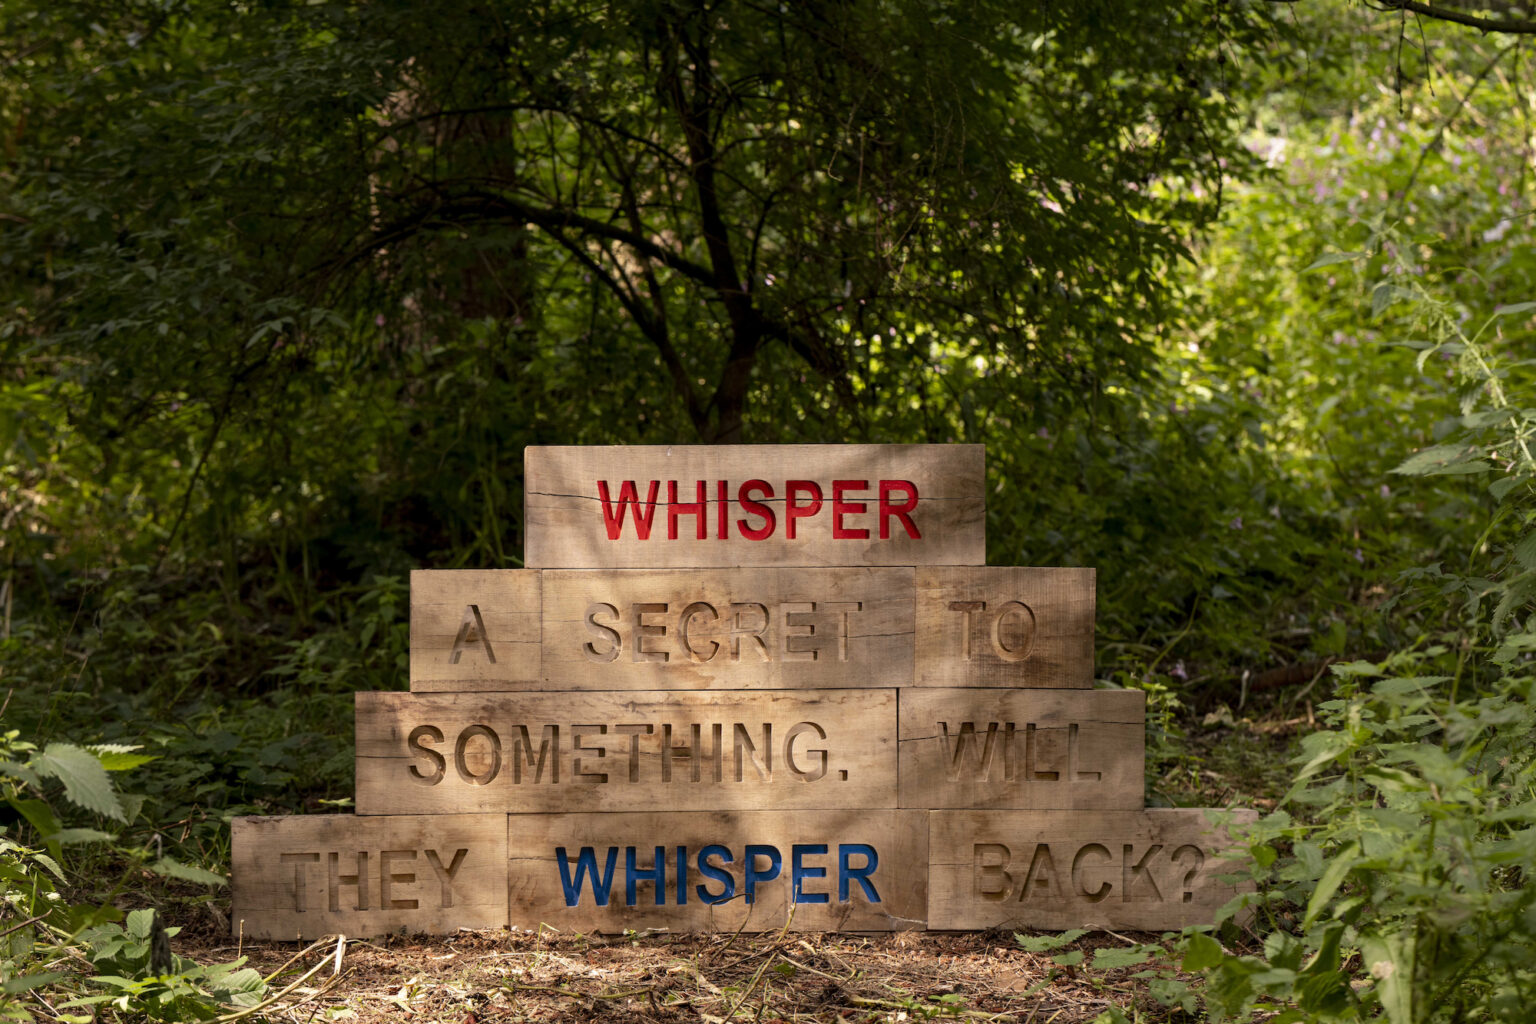 An image of wooden block engraved in upper case letters are arranged in a short stack. They say: 'Whisper a secret to something. See if they whisper back?'.